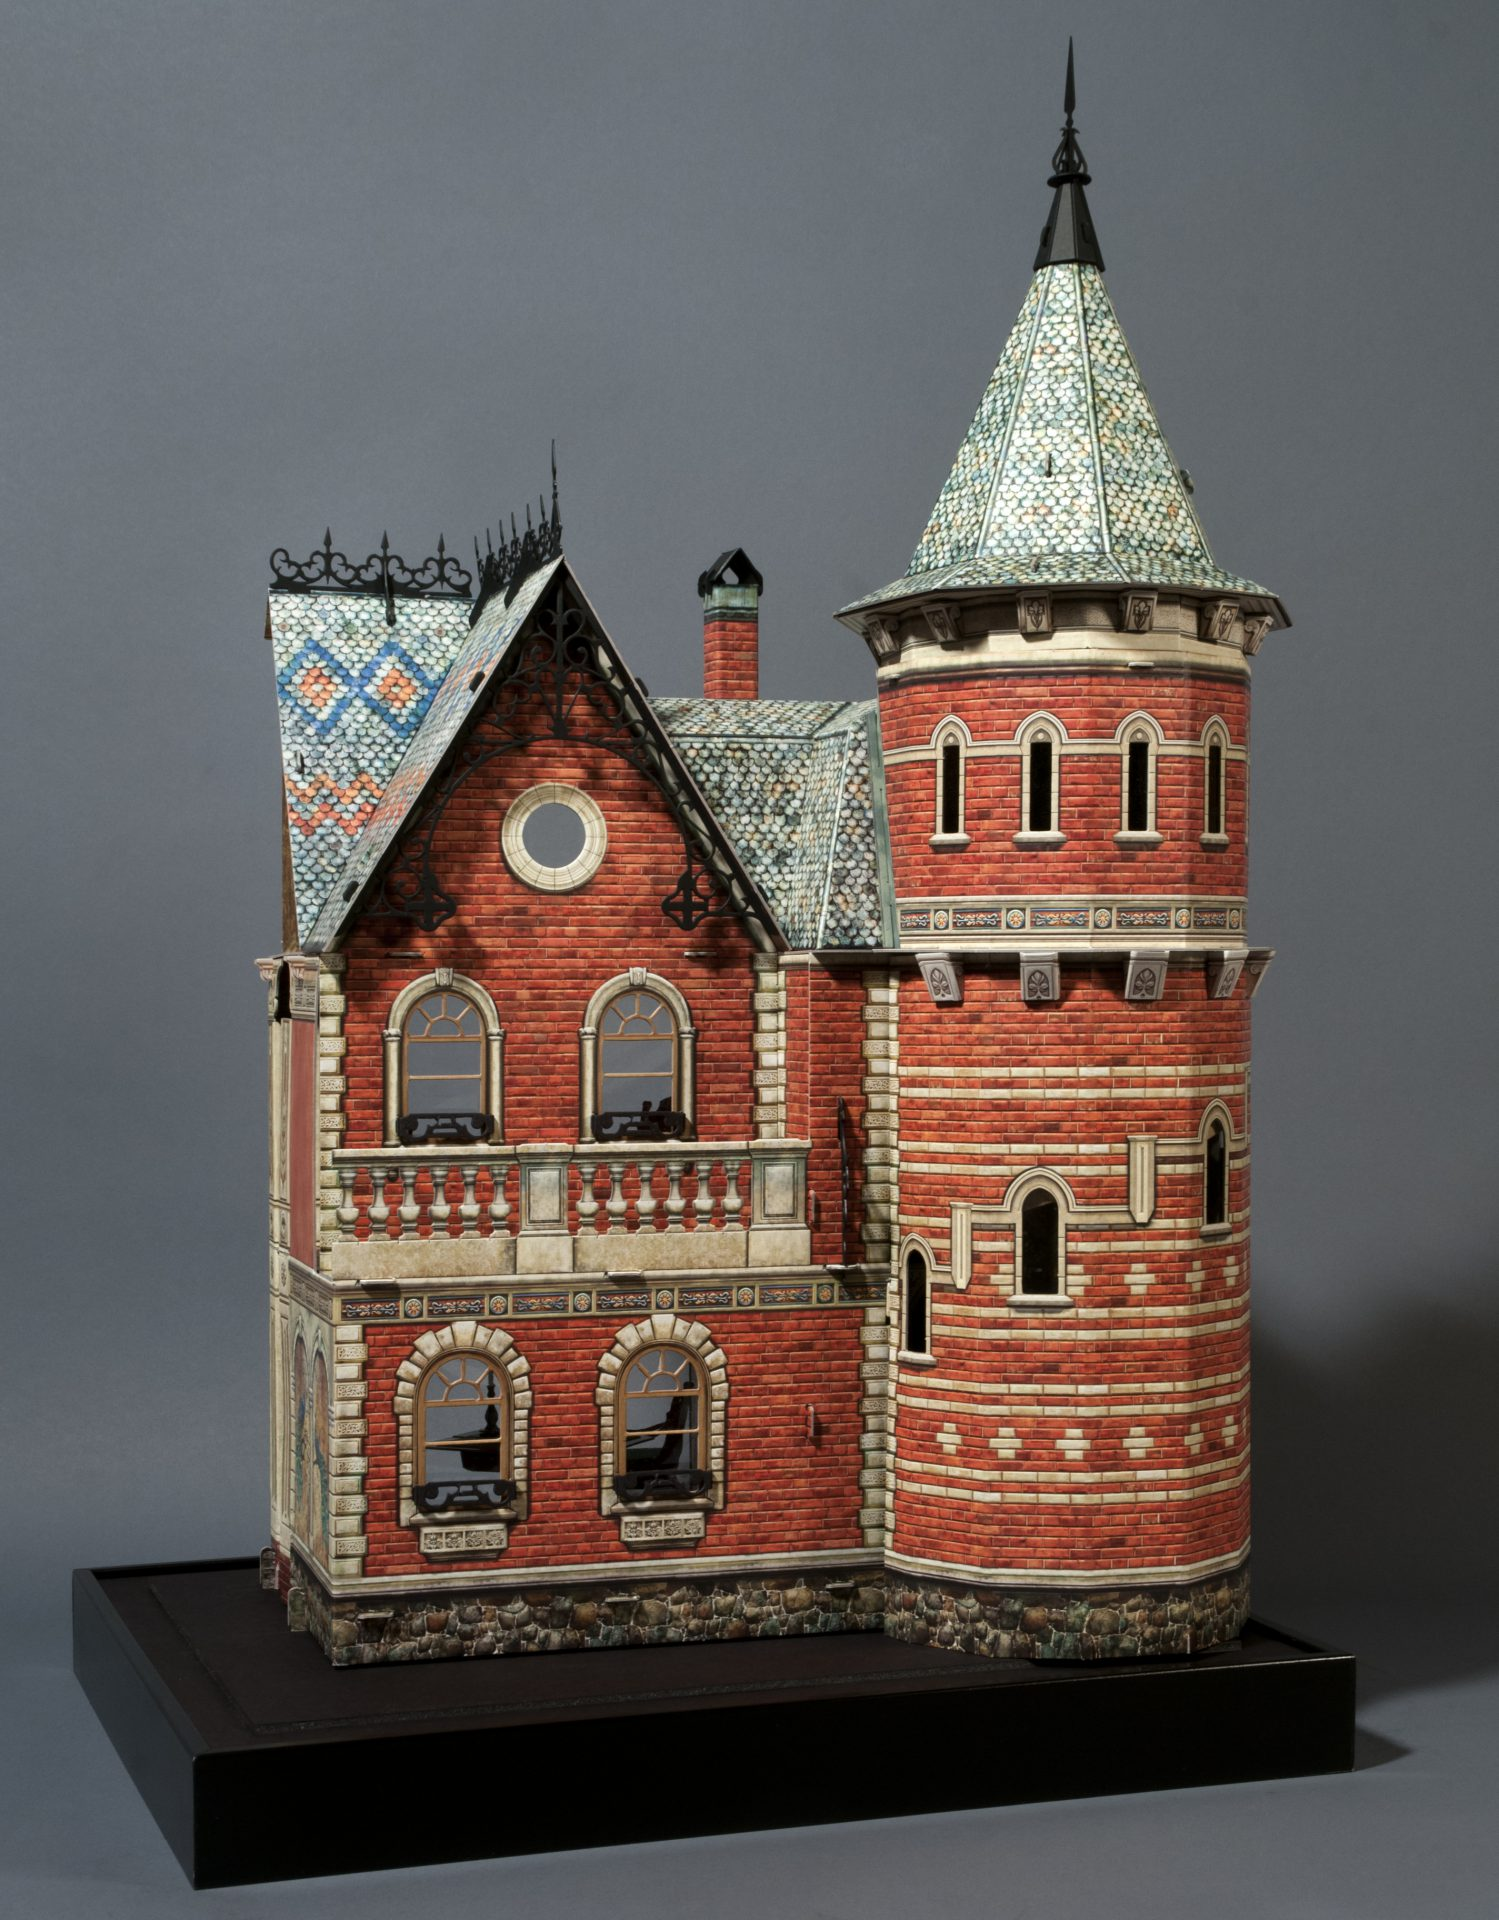 Russian Doll House crafted by Darryl Audette for Hobby Sense